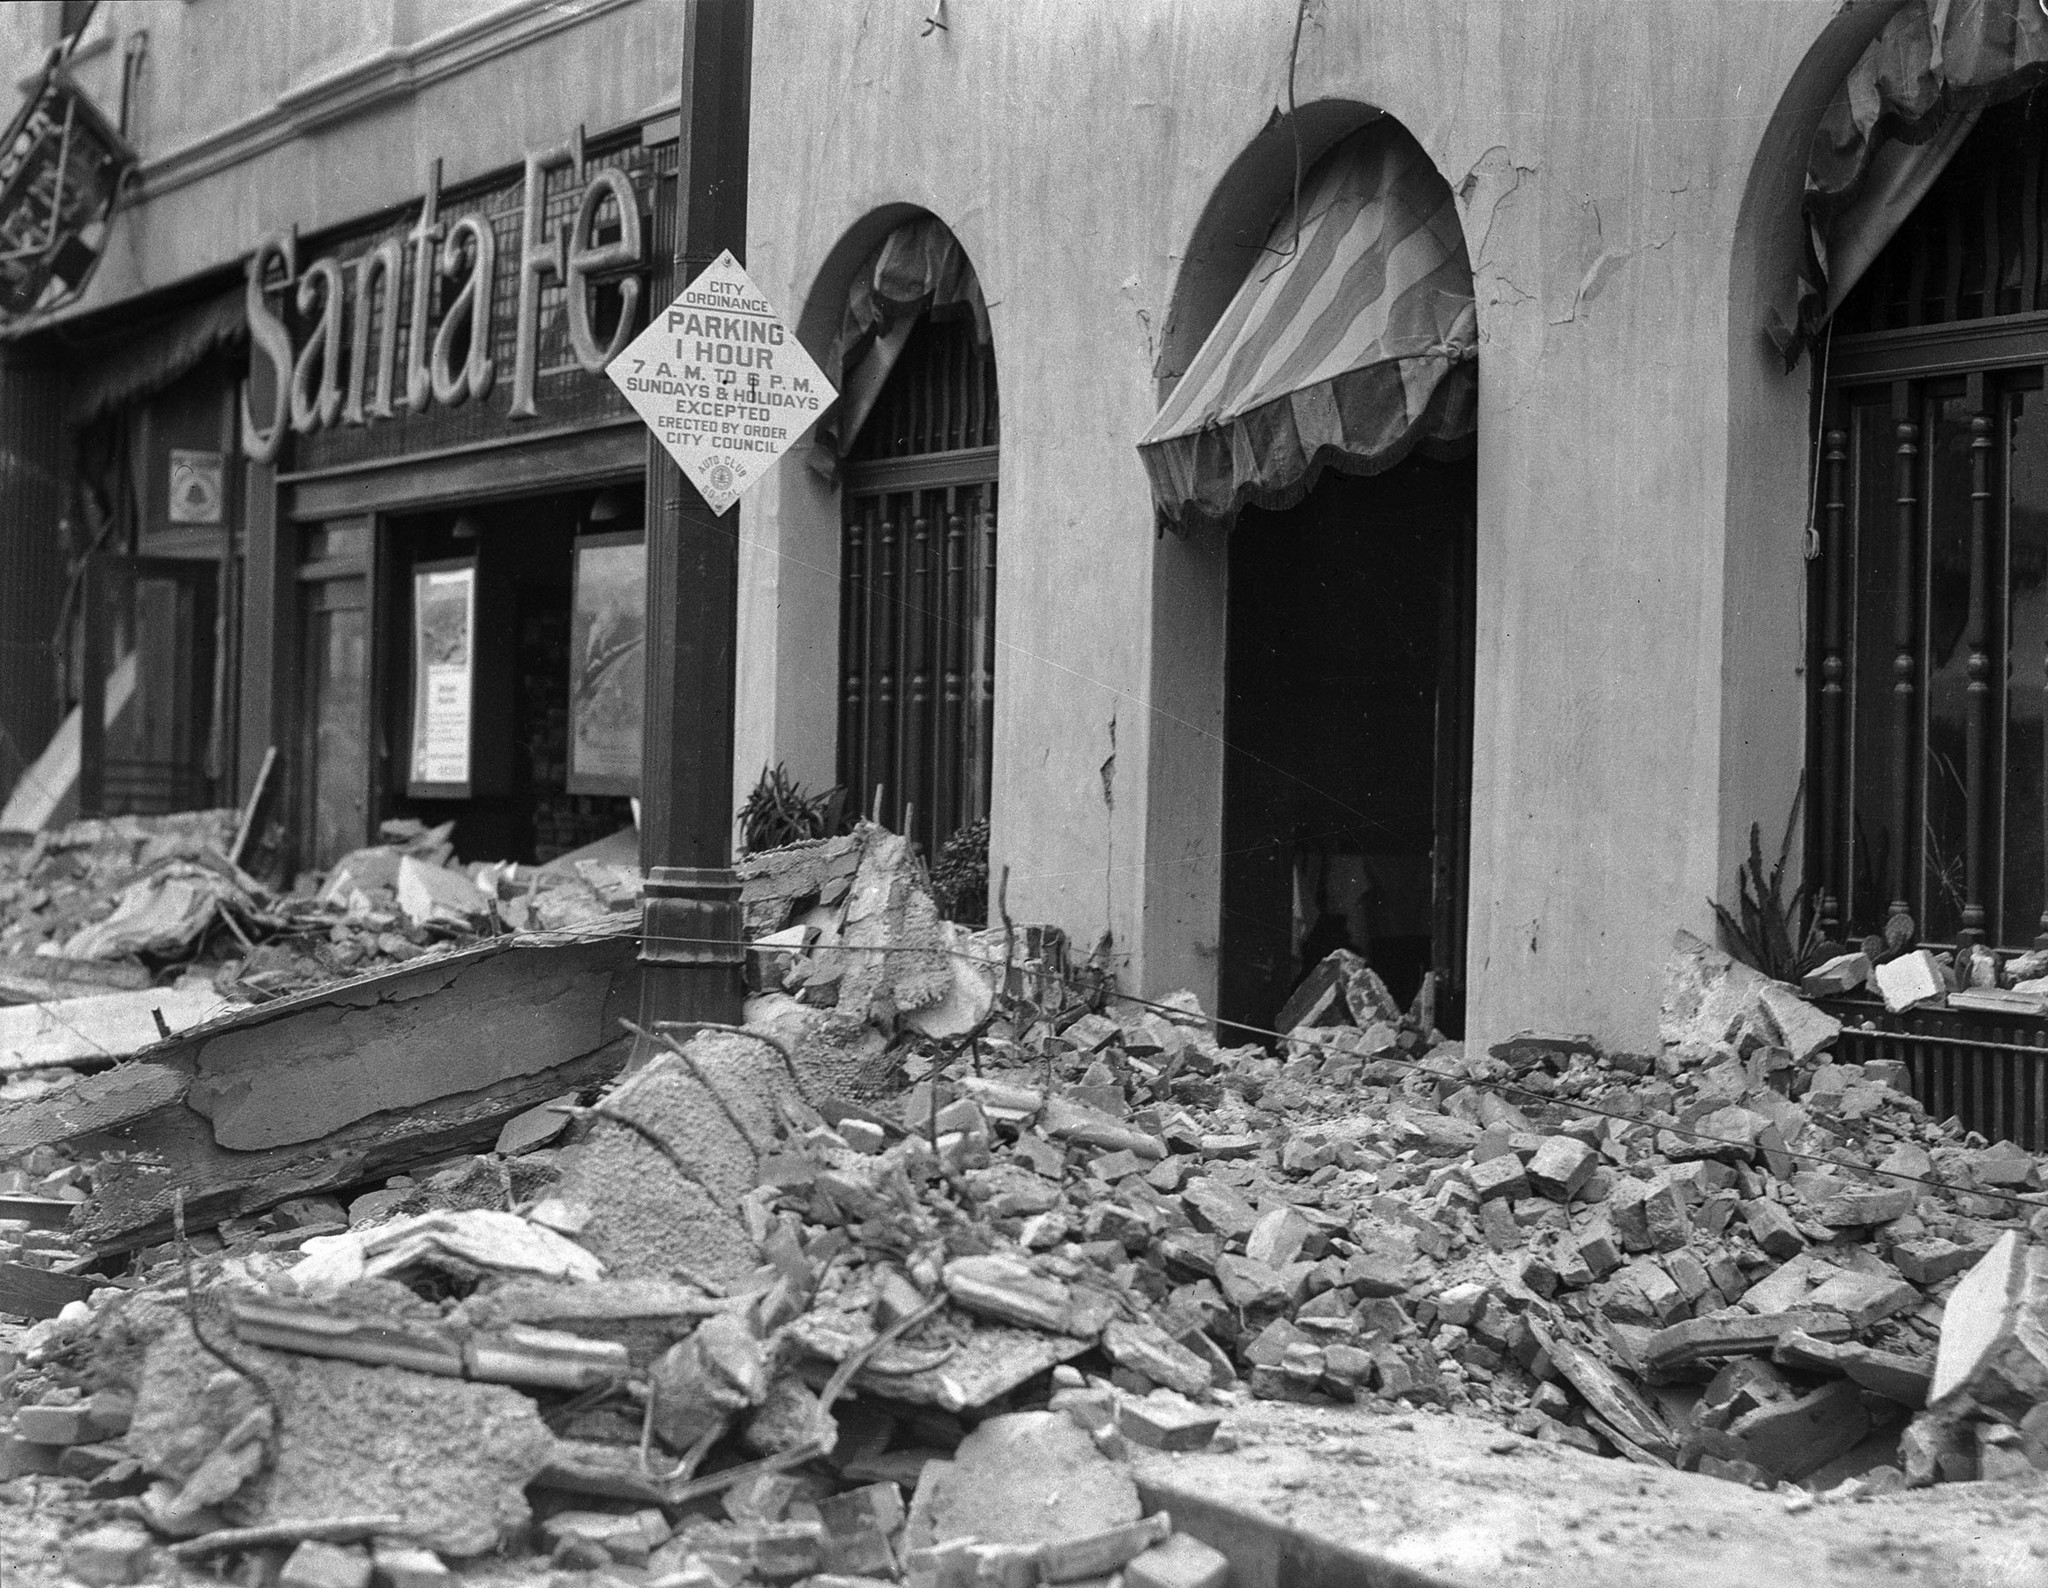 Earthquake-damaged building occupied by the Rossmore Hotel, Santa Ana, 1933. View of the earthquake-